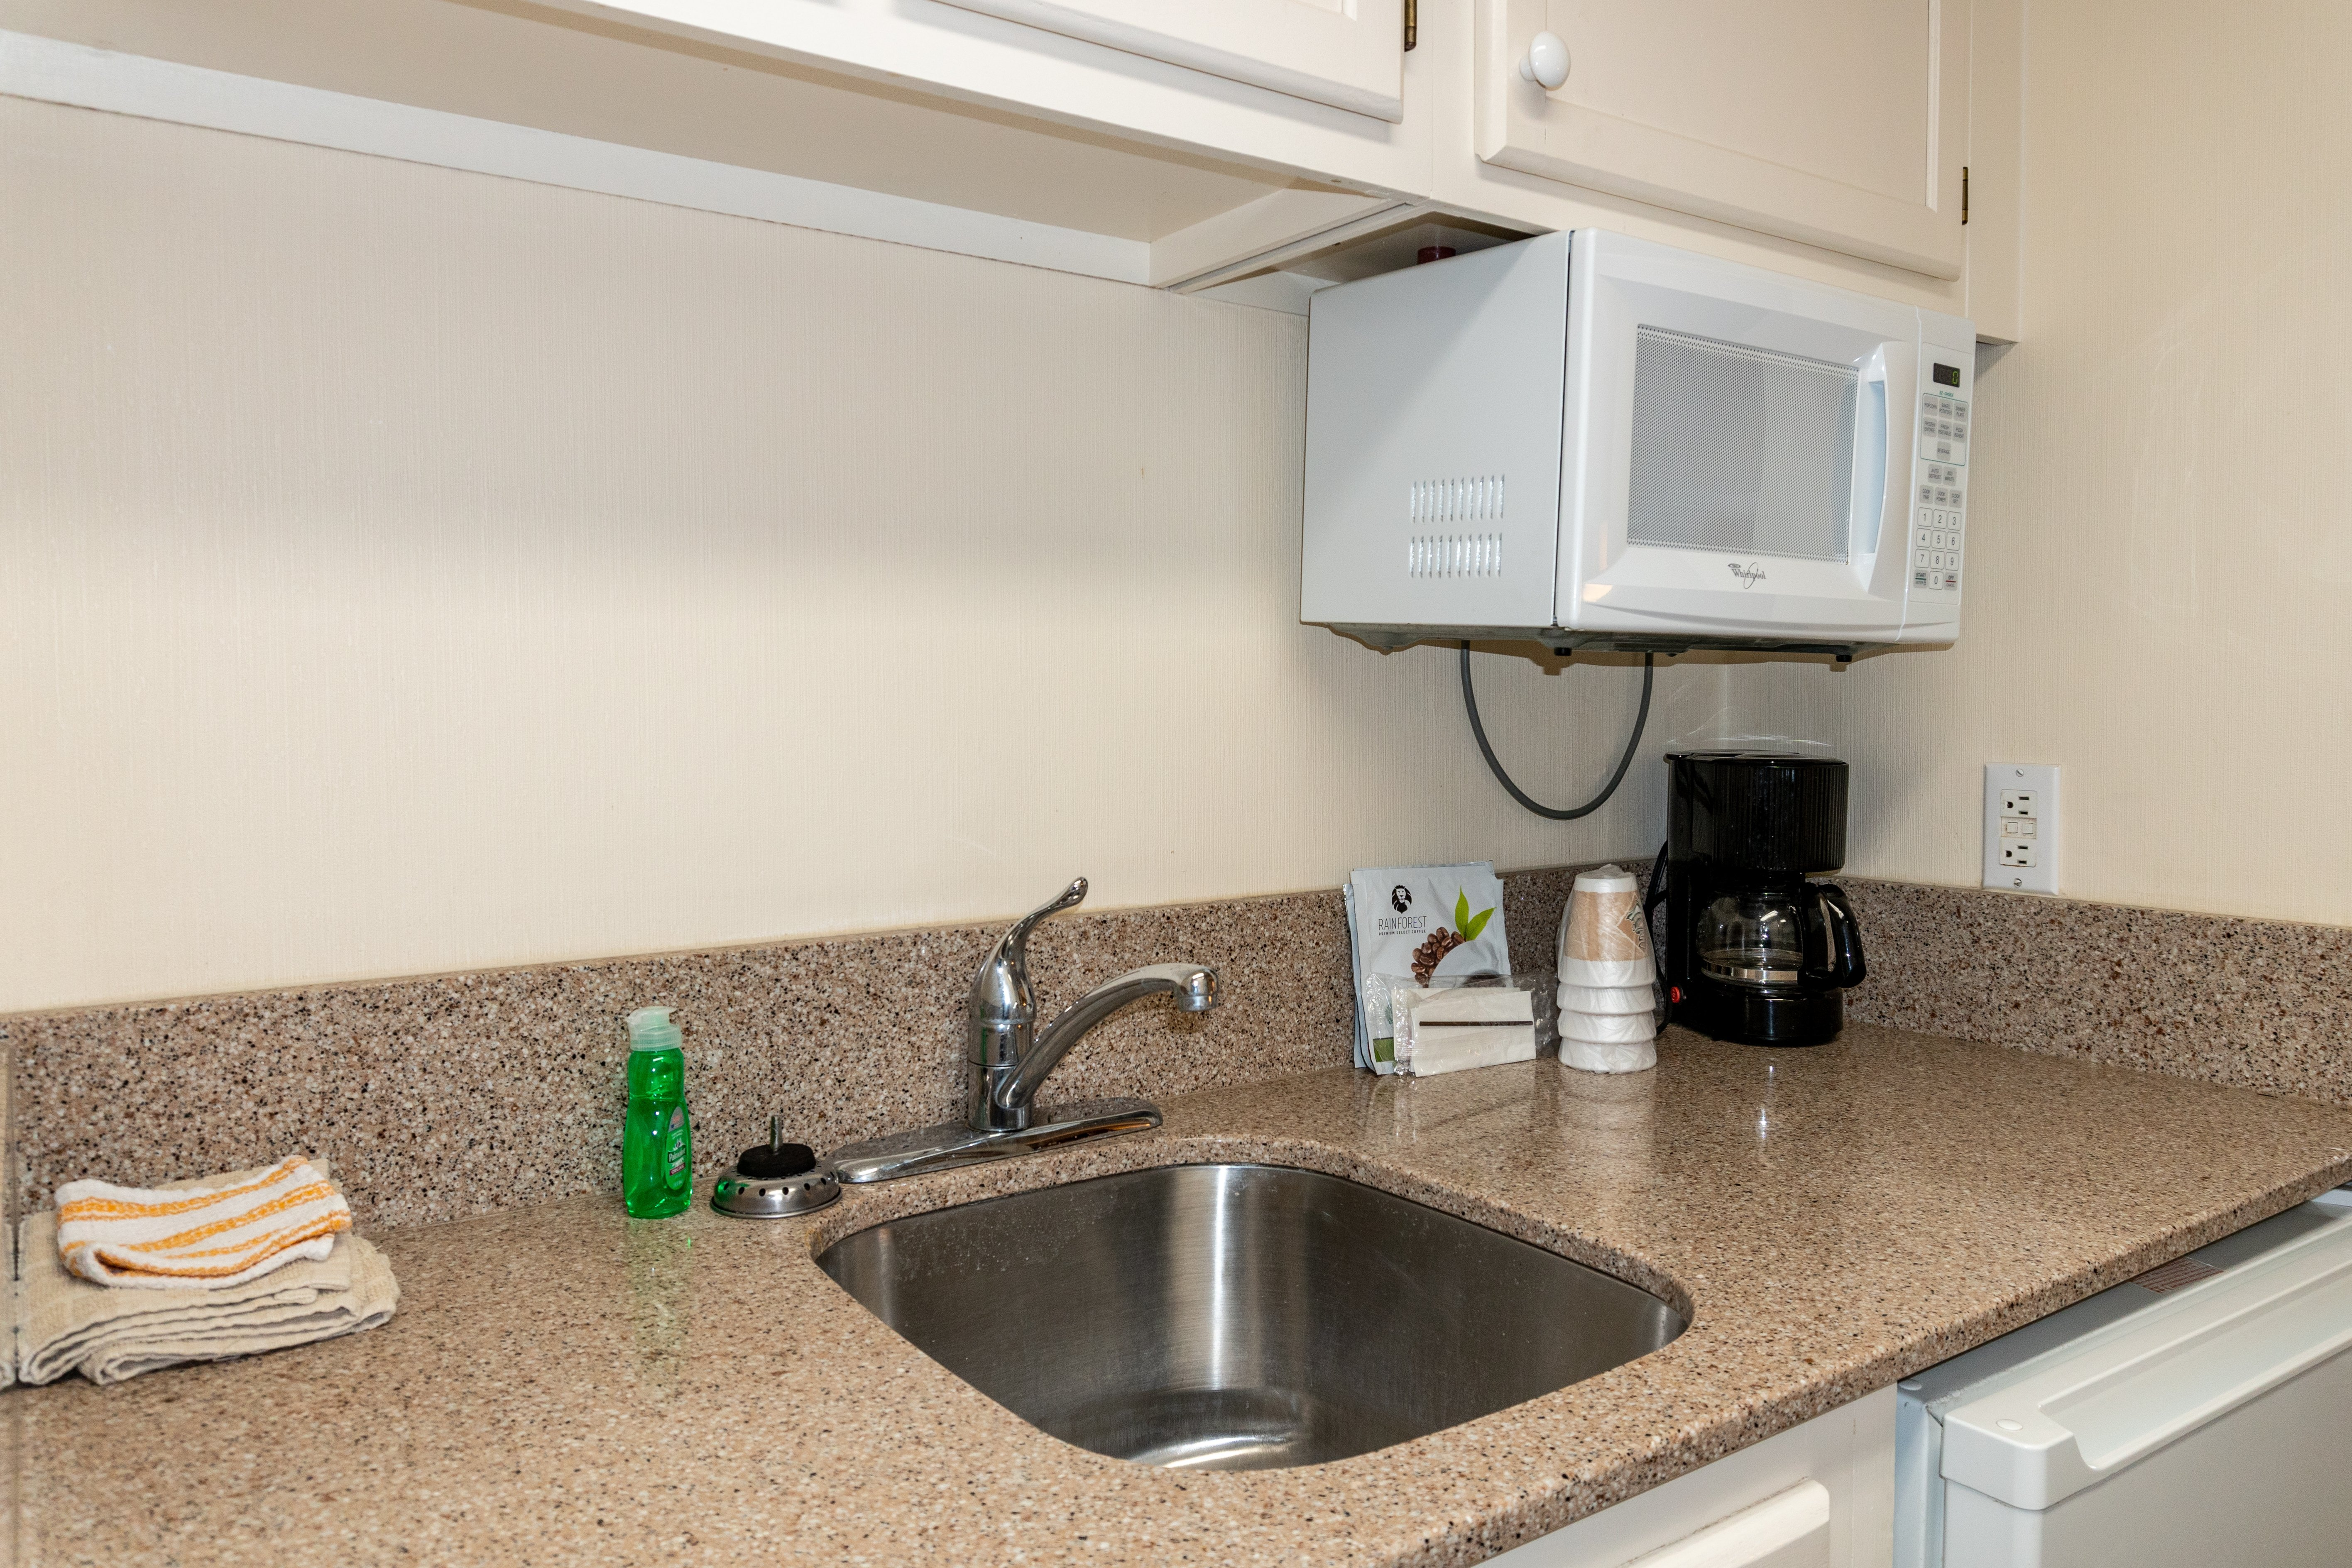 oceanfront room mini kitchen appliances.jpg